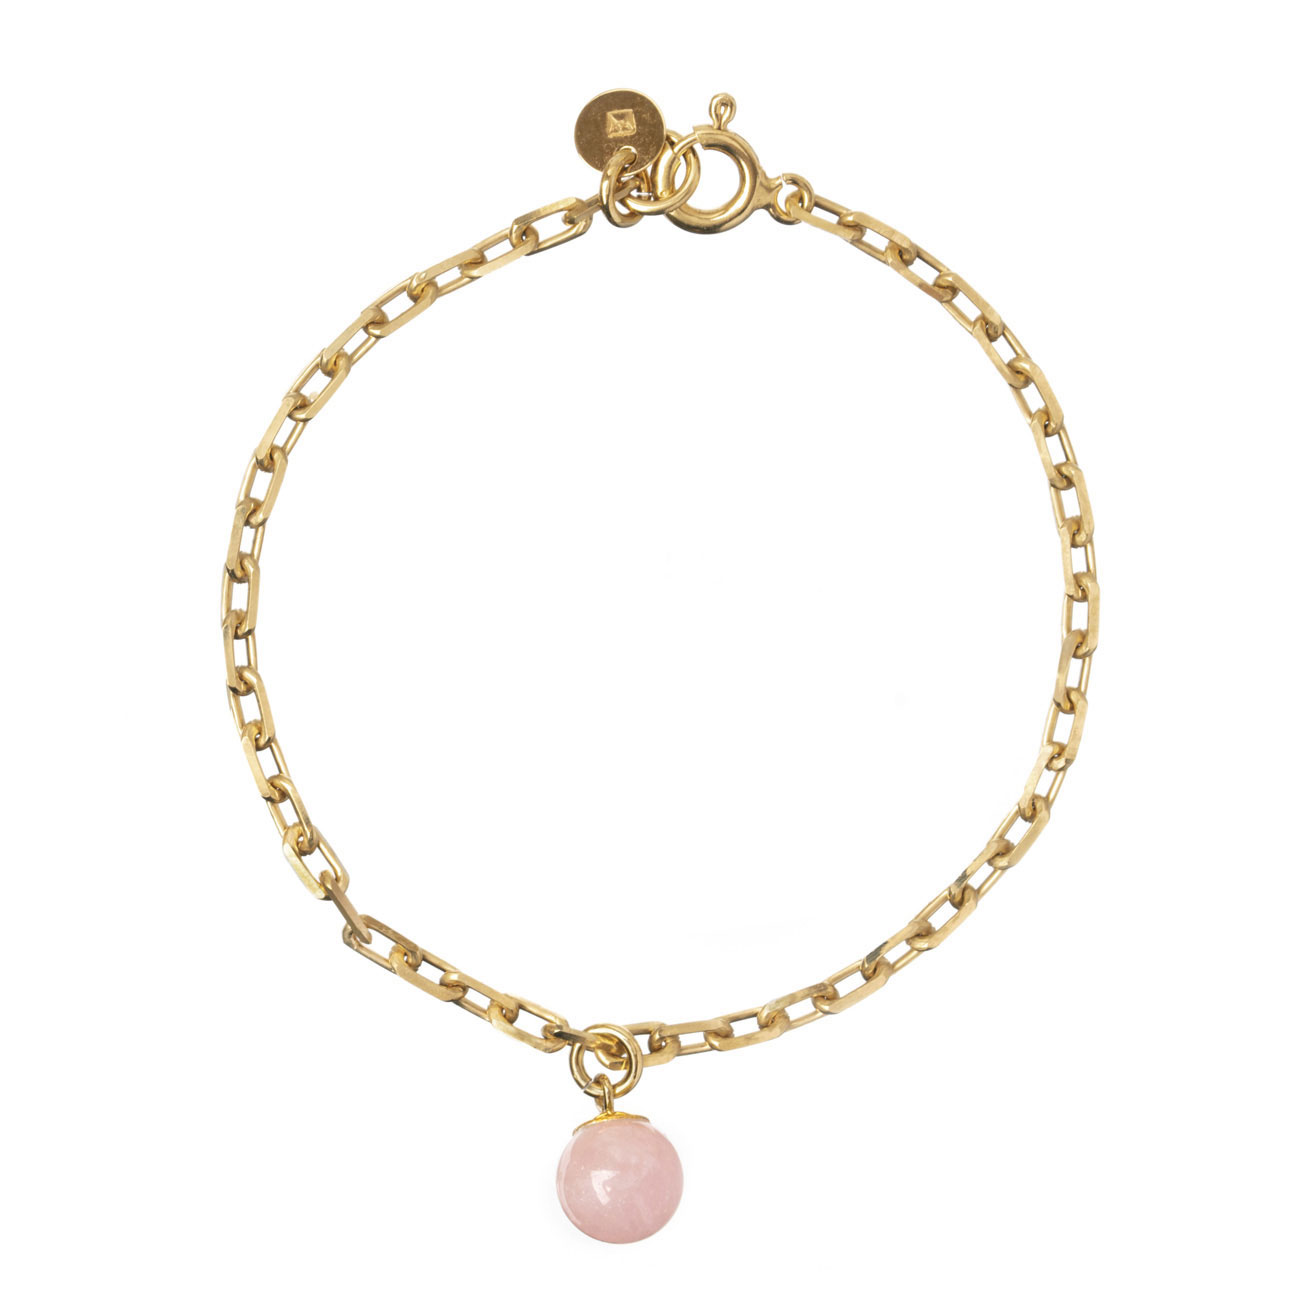 metaformi_design_jewelry_guilty_pleasures_gold_ball_bracelet